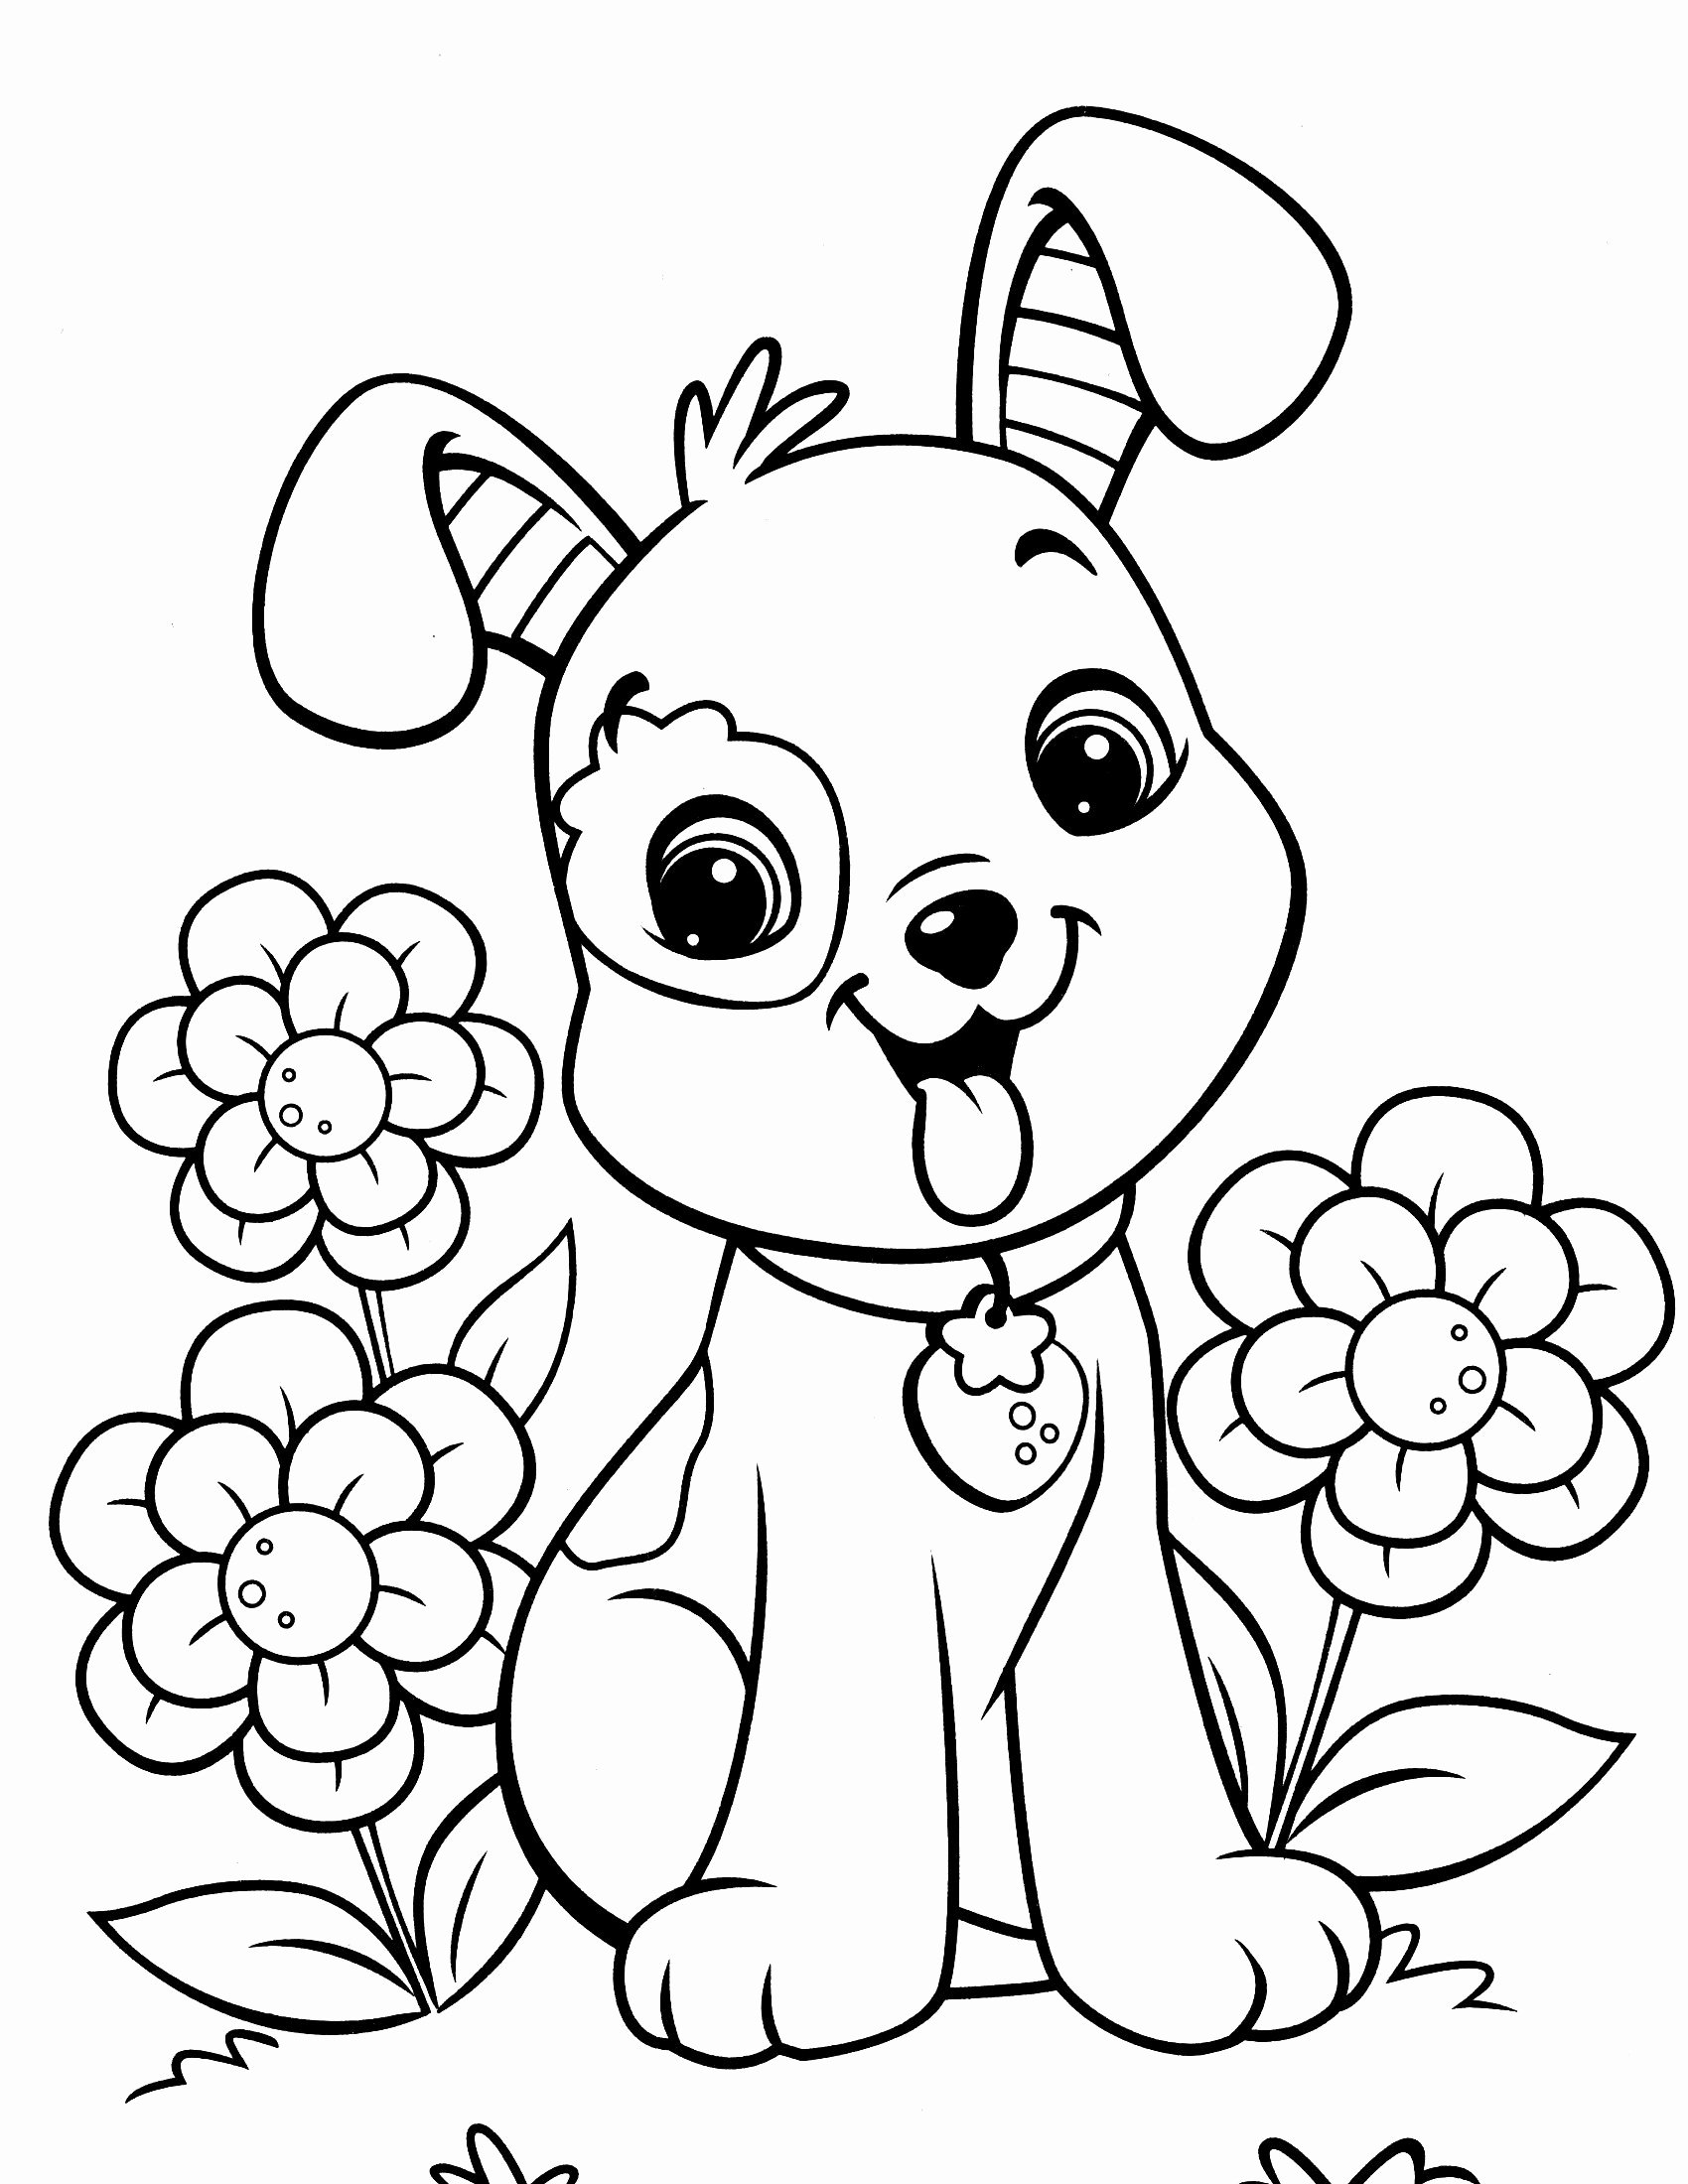 Free Printable Coloring Worksheets for Preschoolers Printable Coloring Pages Free Printable Coloring Pages for